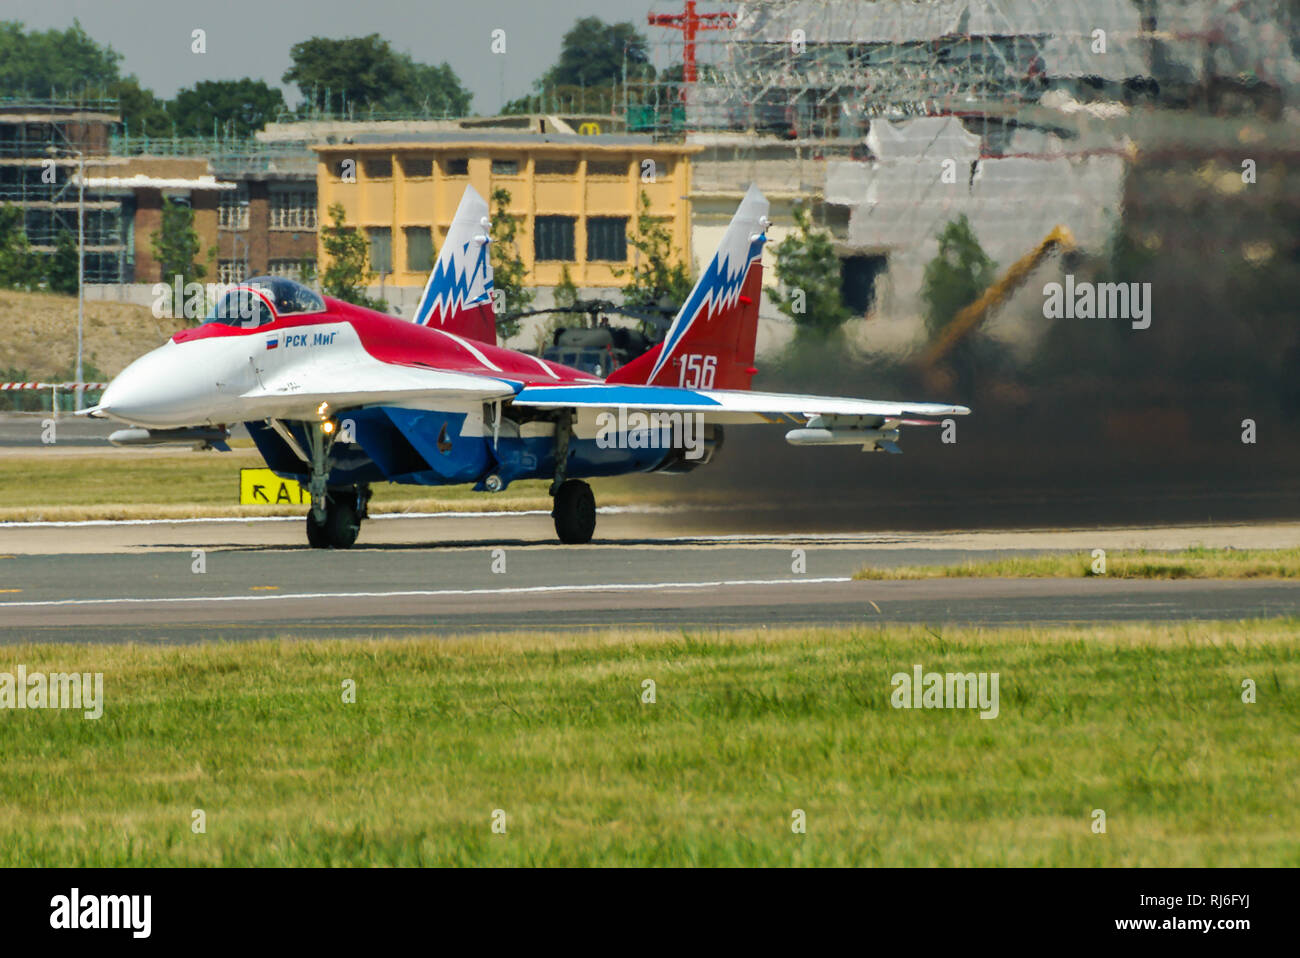 MiG-29OVT jet plane, thrust vectoring testbed flying at the Farnborough International Airshow, UK air show. Mikoyan Gurevich MiG29 - Stock Image